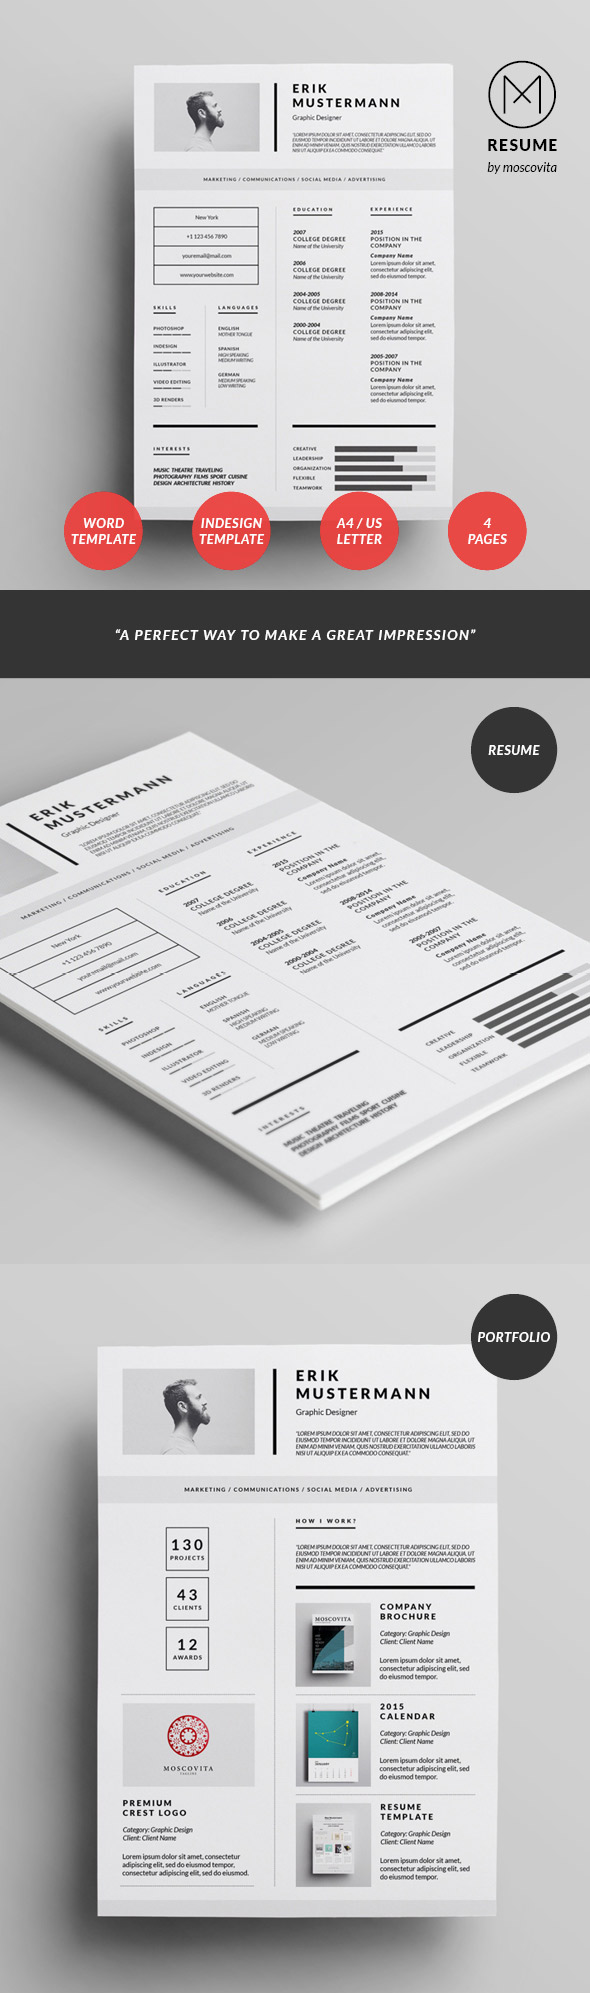 creative modern resume design